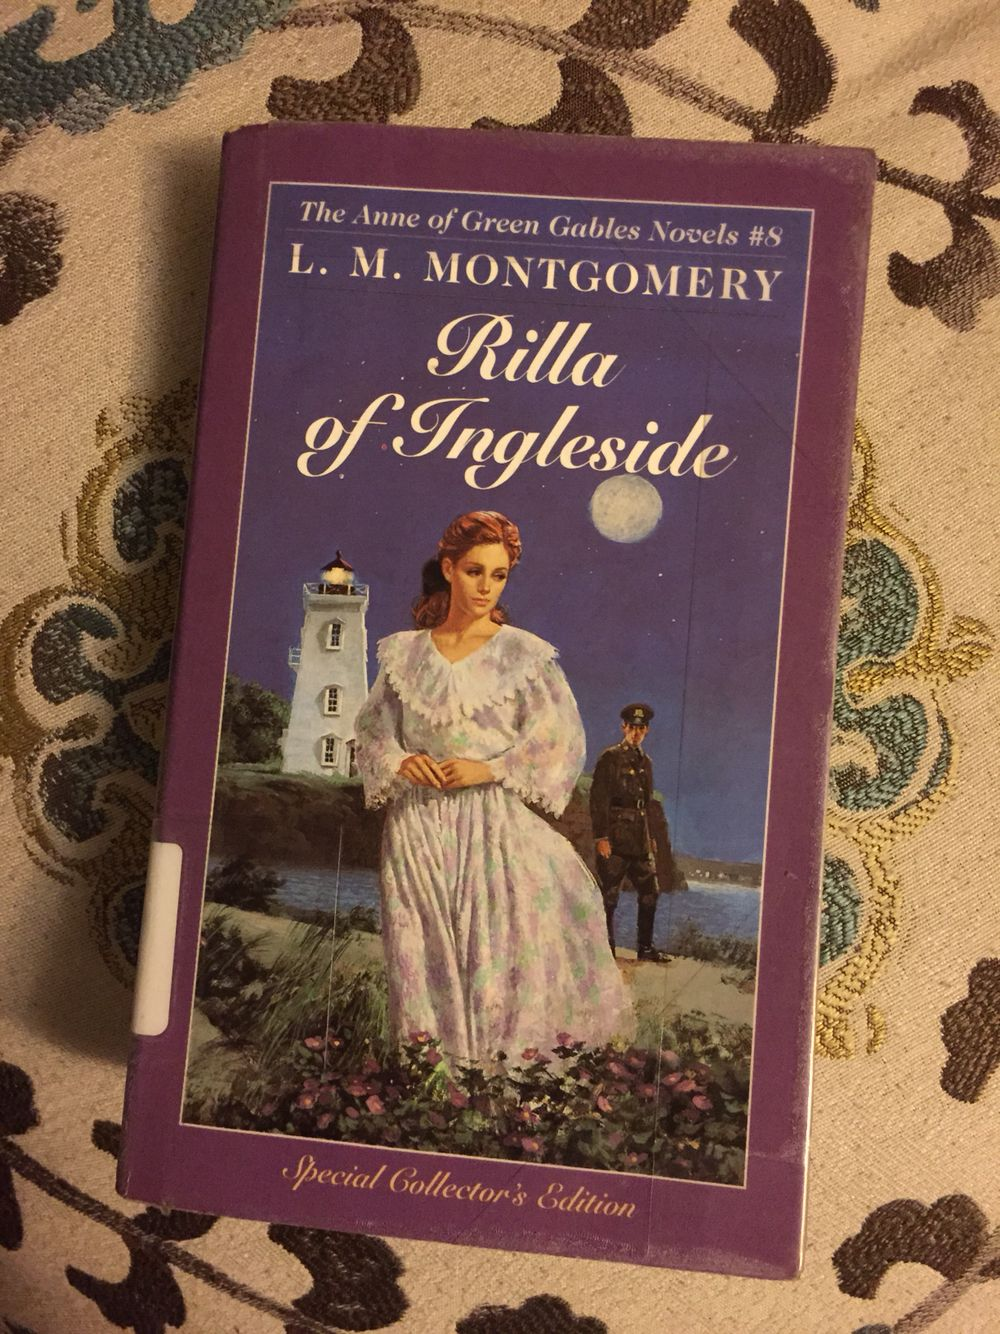 How Utterly Delighted I Am To Have Finished The Ending To Rilla Of Ingleside My Heart Will Be Mended More Over By The Ingleside Anne Of Green Gables My Books